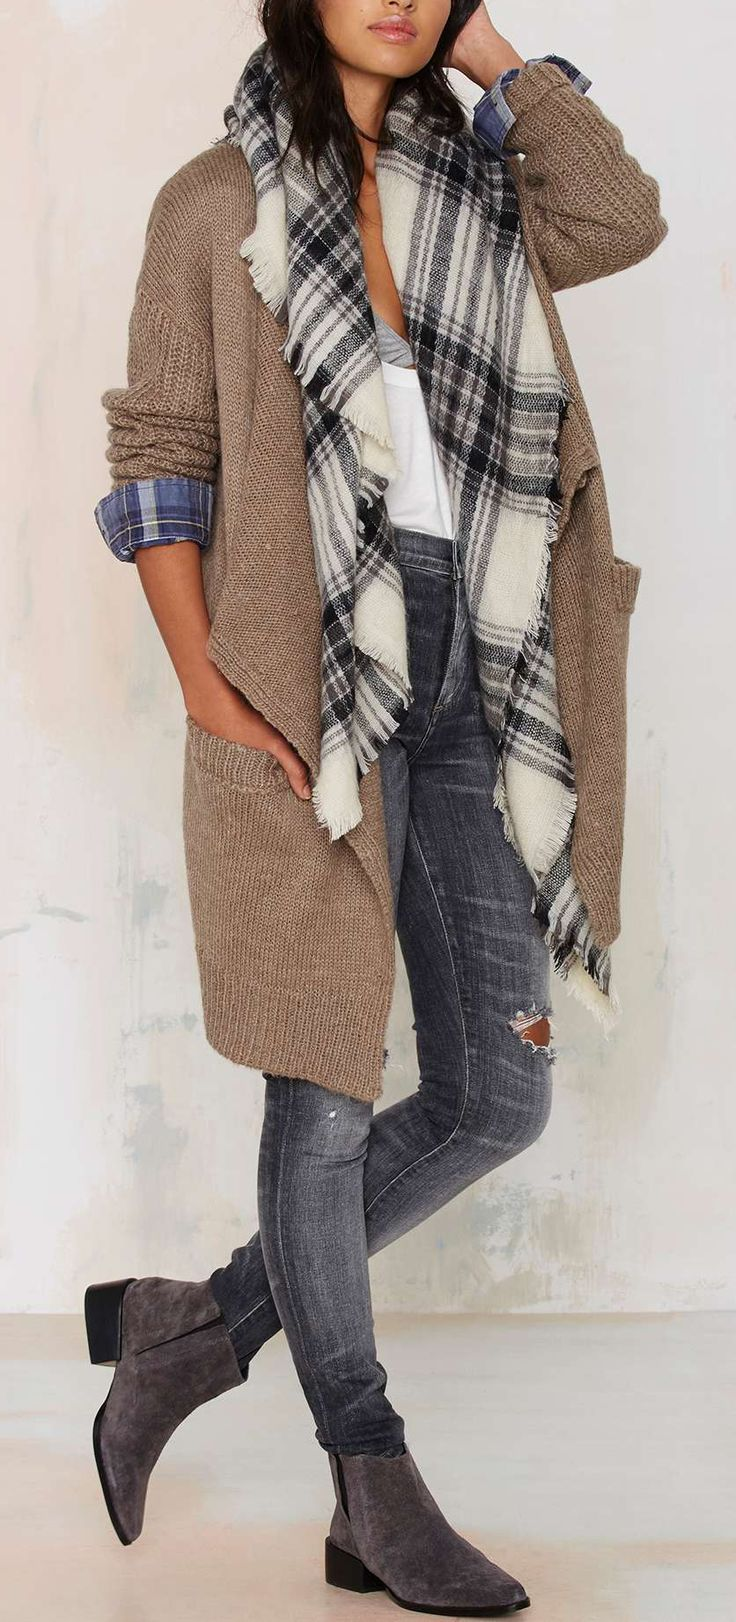 Fall style women fashion outfit clothing stylish apparel @roressclothes closet ideas